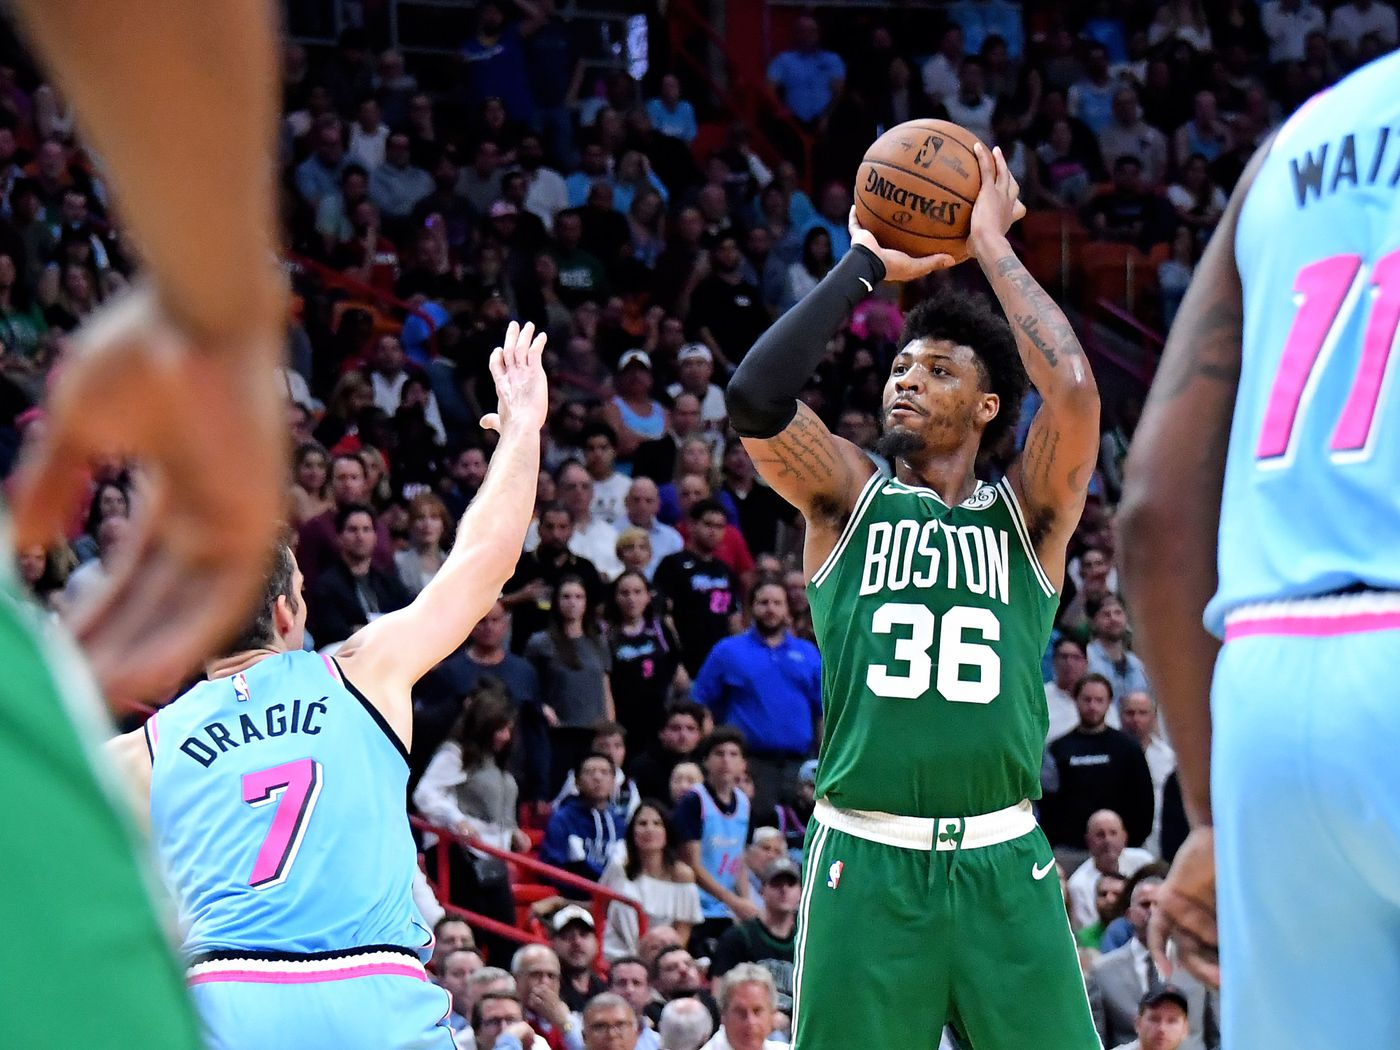 Celtics Vs Heat Series 2020 Tv Info Game Schedule Results Scores Recaps Stats For Eastern Conference Finals Draftkings Nation